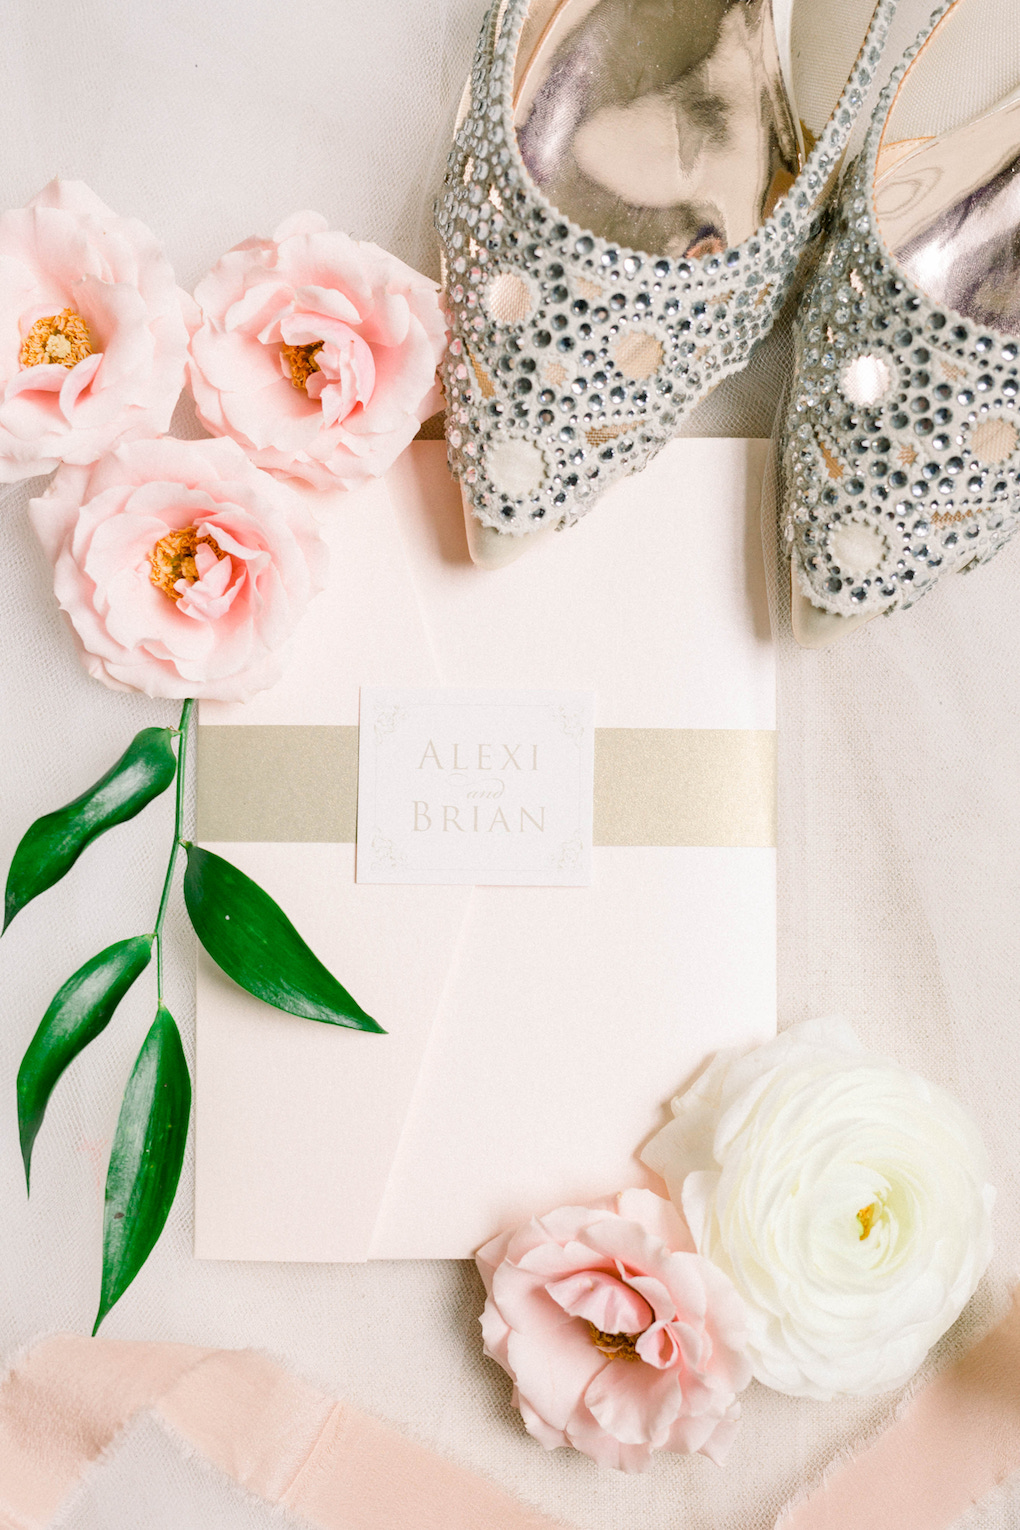 Embellished wedding shoes: Romantic Fairytale wedding at the Omni William Penn in Pittsburgh, PA planned by Exhale Events. Find more wedding inspiration at exhale-events.com!